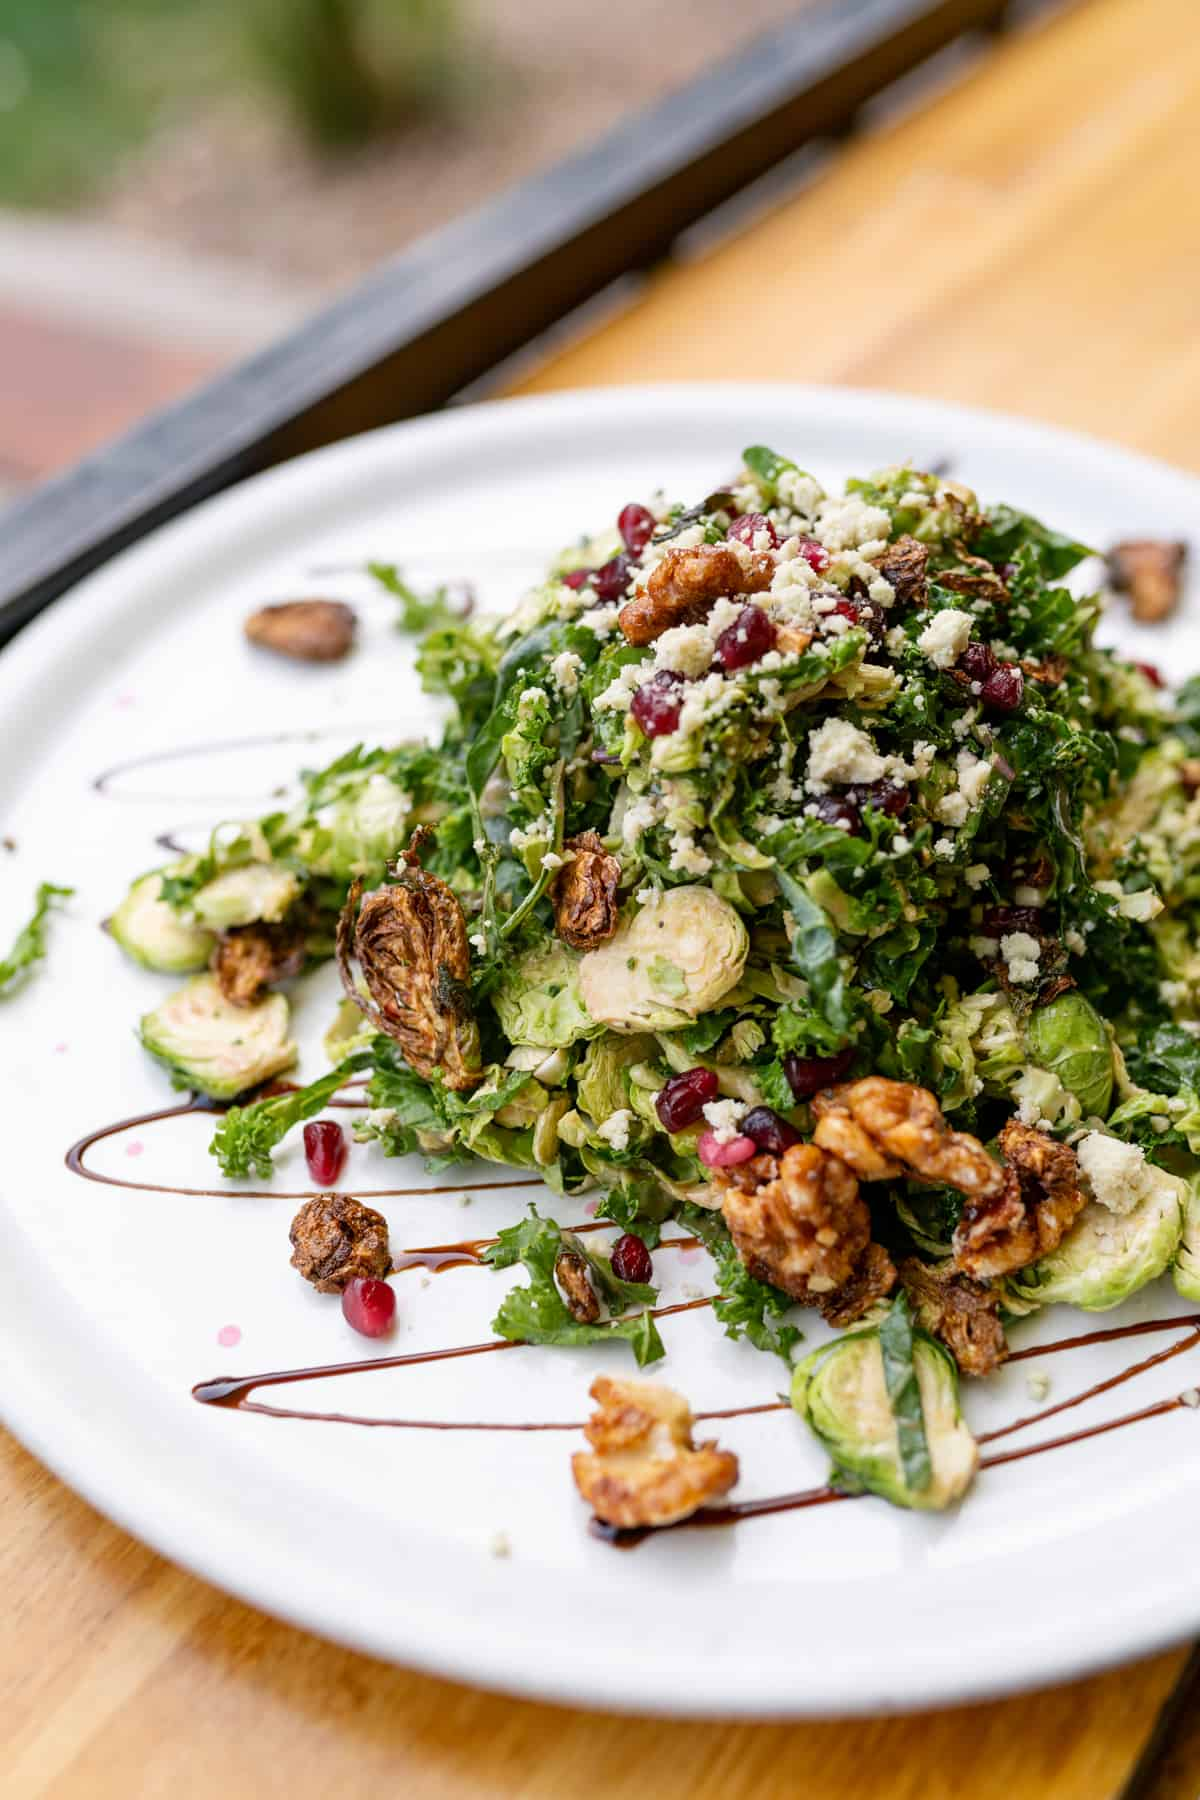 Look no further for the best vegan restaurants in Denver! Whether you're craving a hearty burger or a simple salad, this list has what you're looking for.